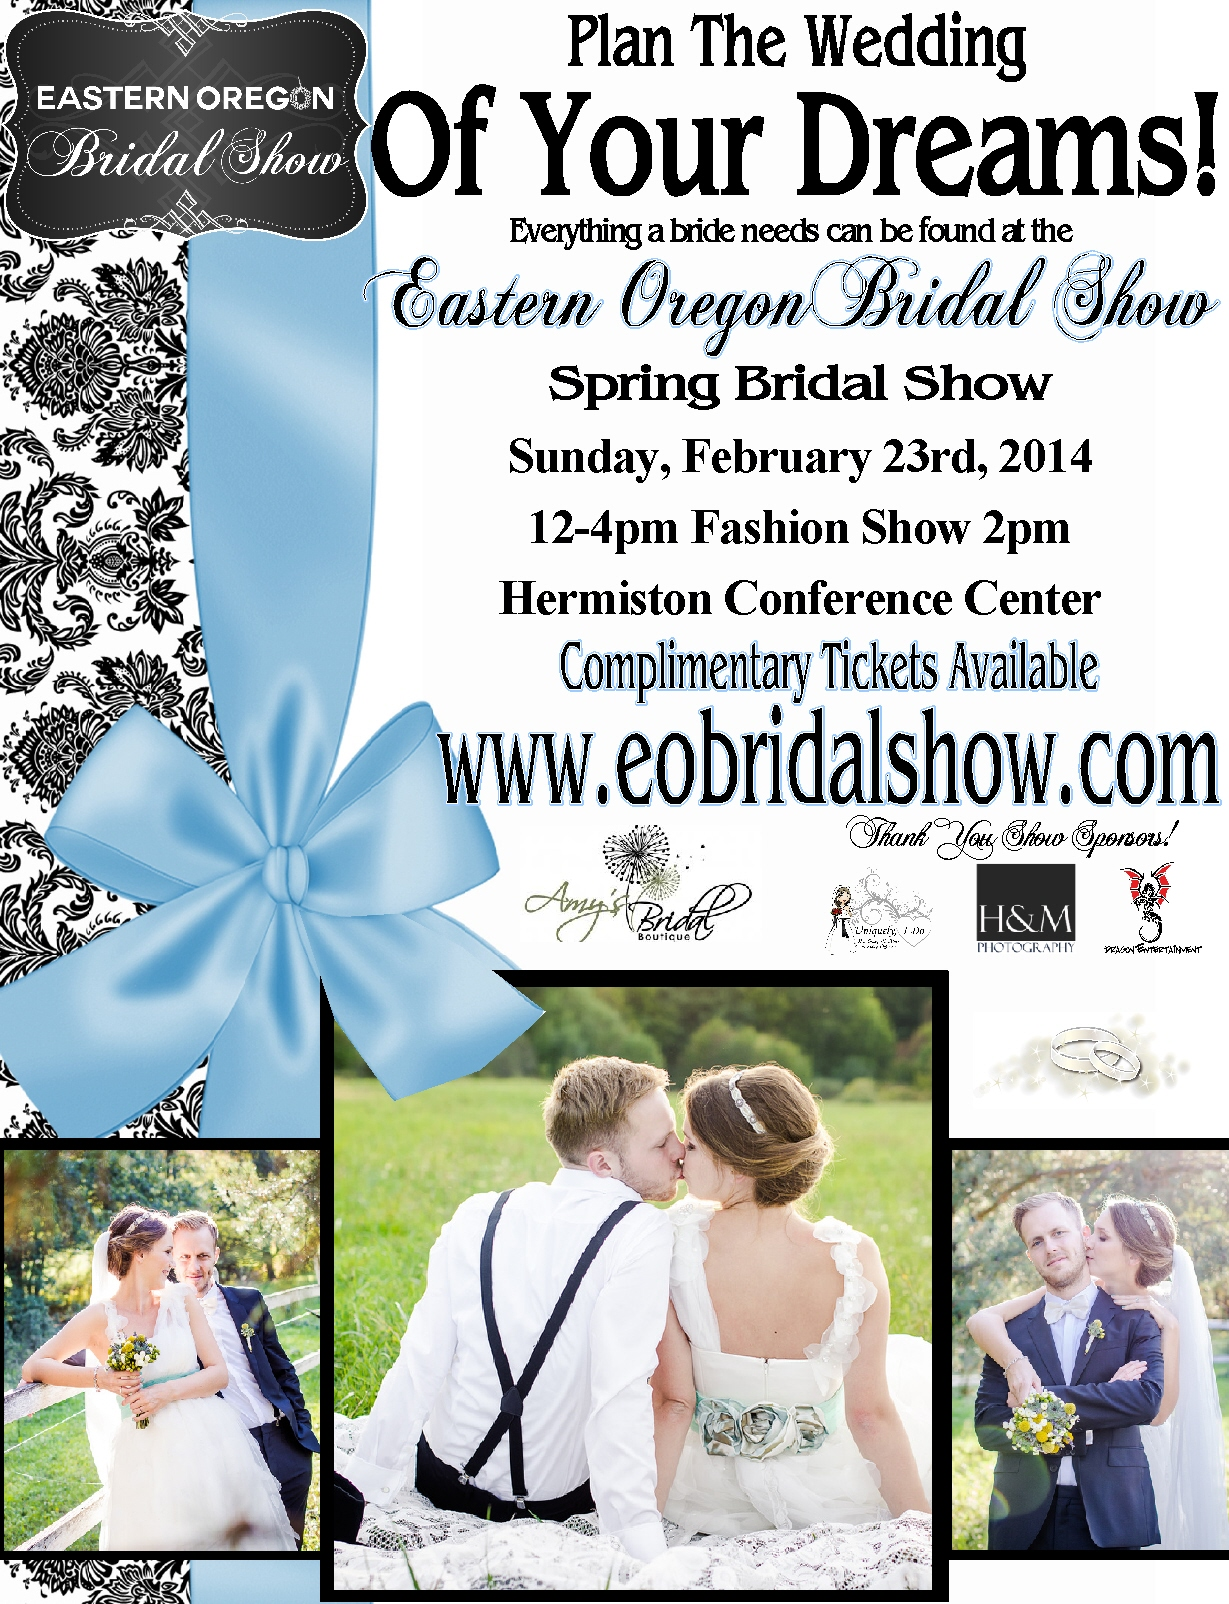 Eastern Oregon Bridal Show